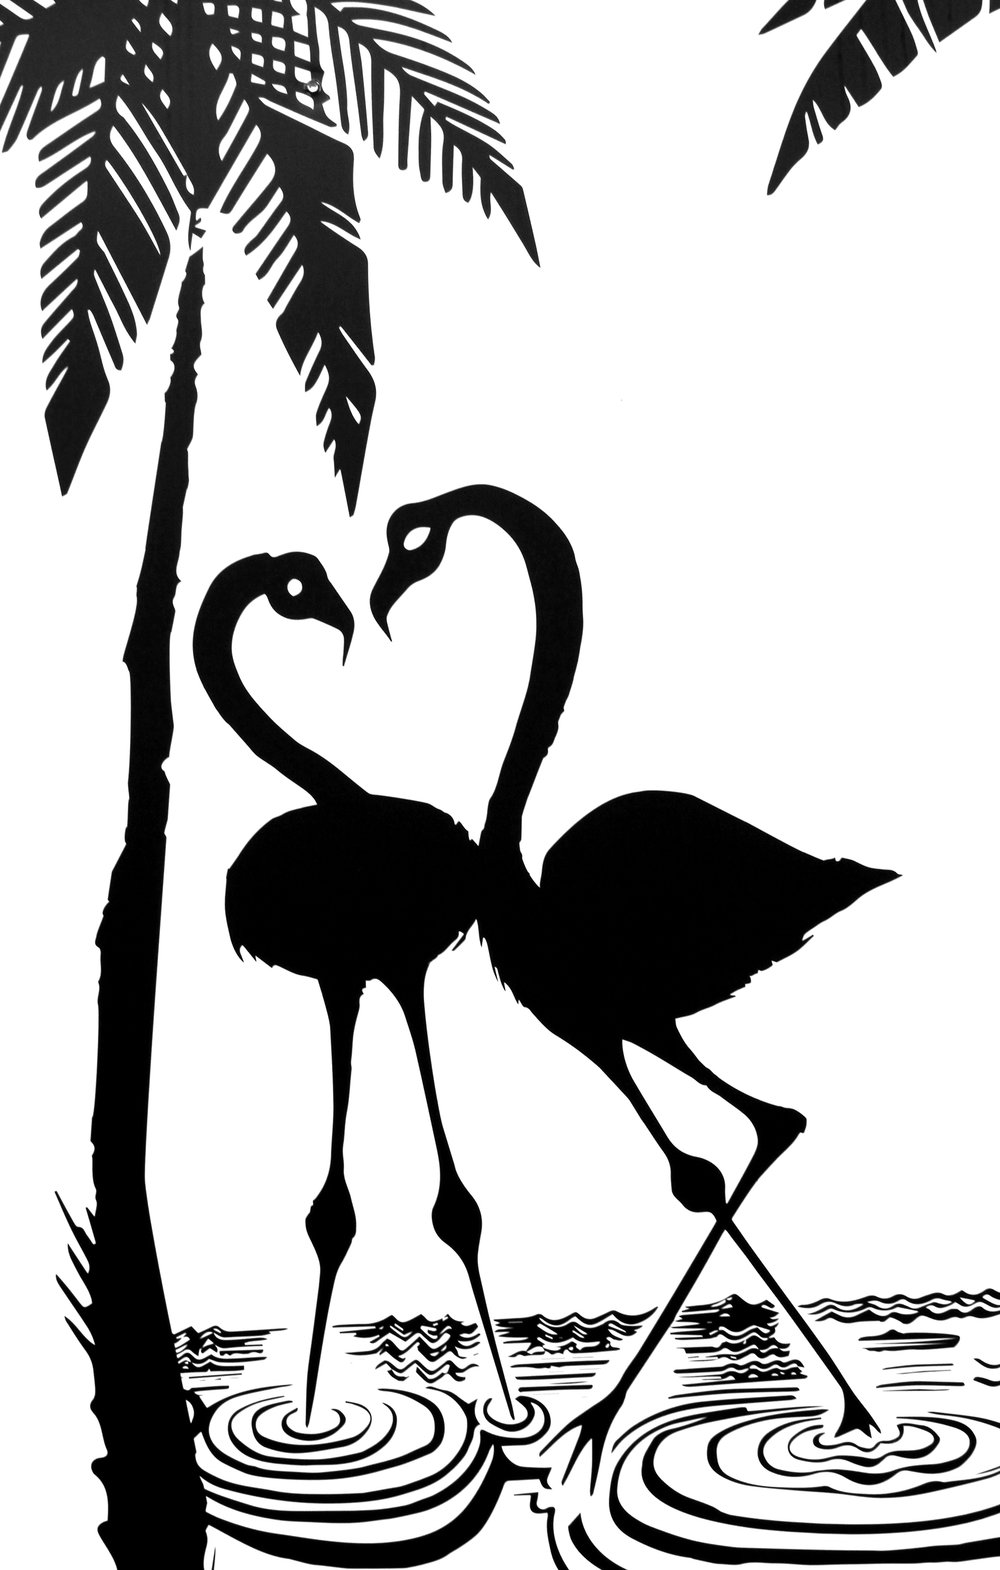 Love Birds [Coconut Grove, Miami, Florida - 2015]